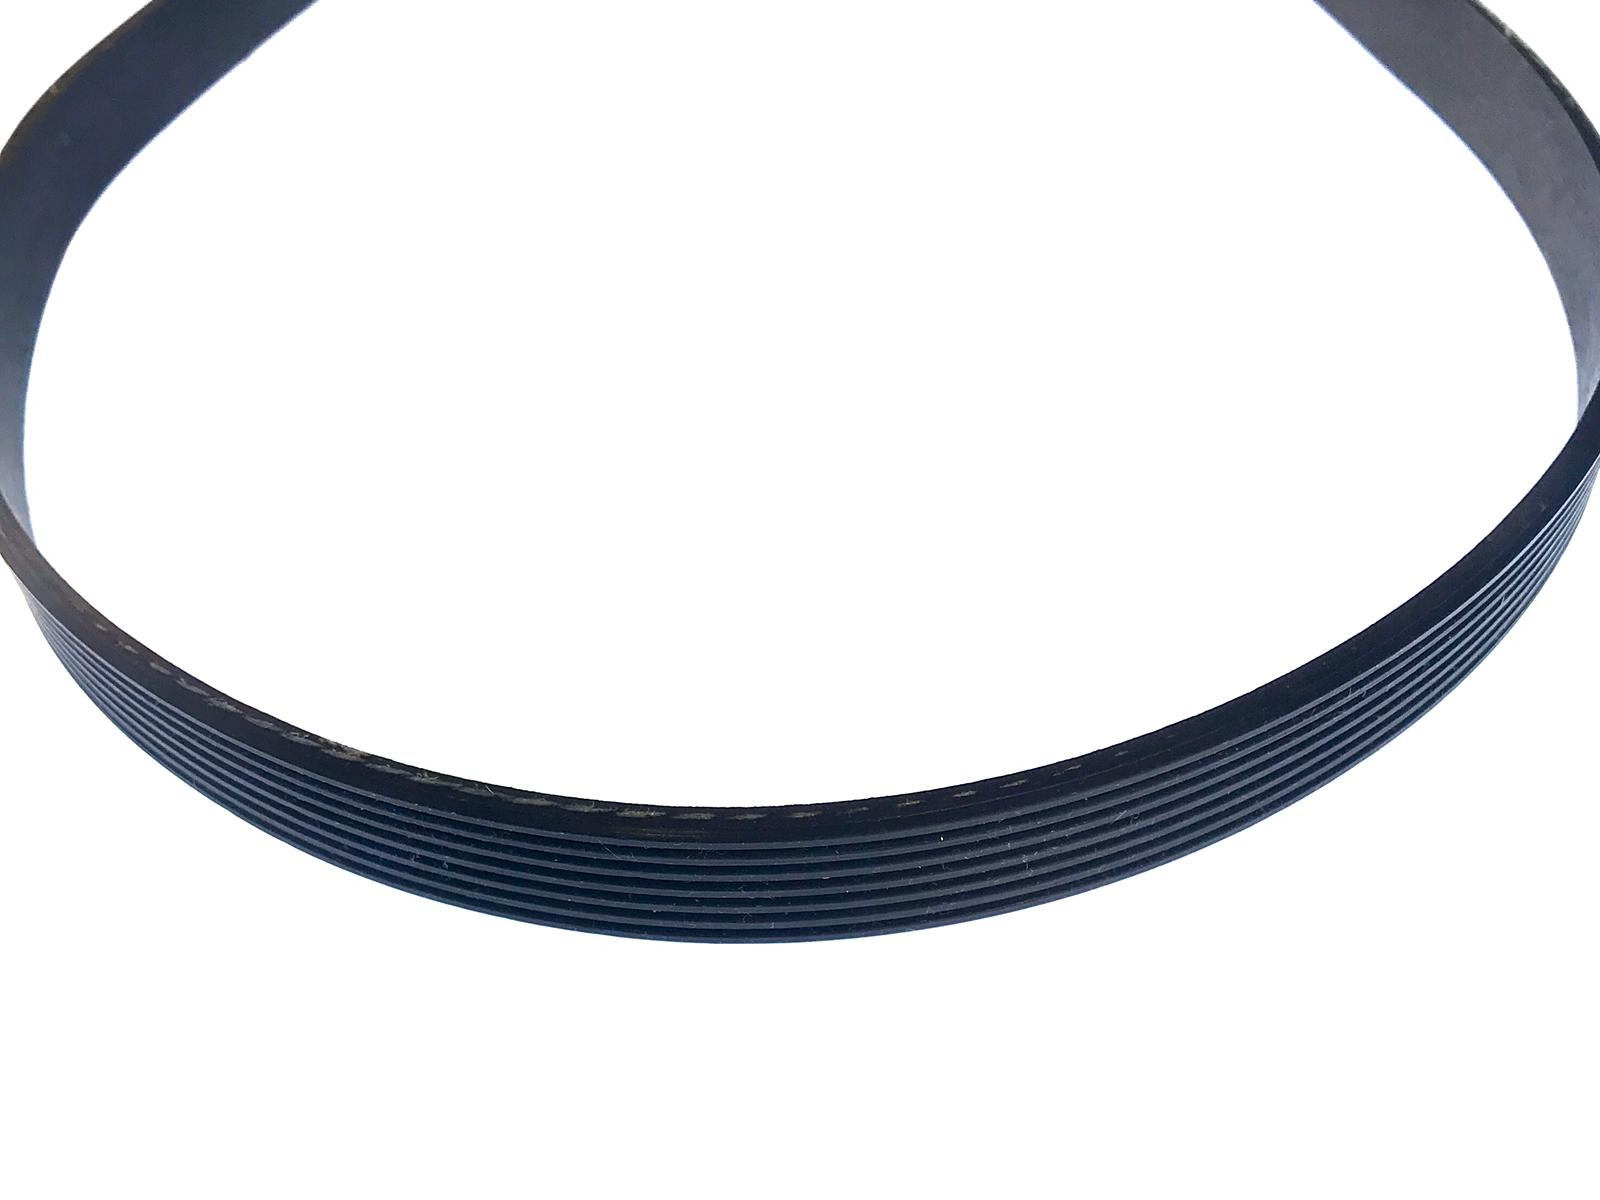 Drive Belt For Hoover DX H9A2TCEX-S Dryer Machine 40001012